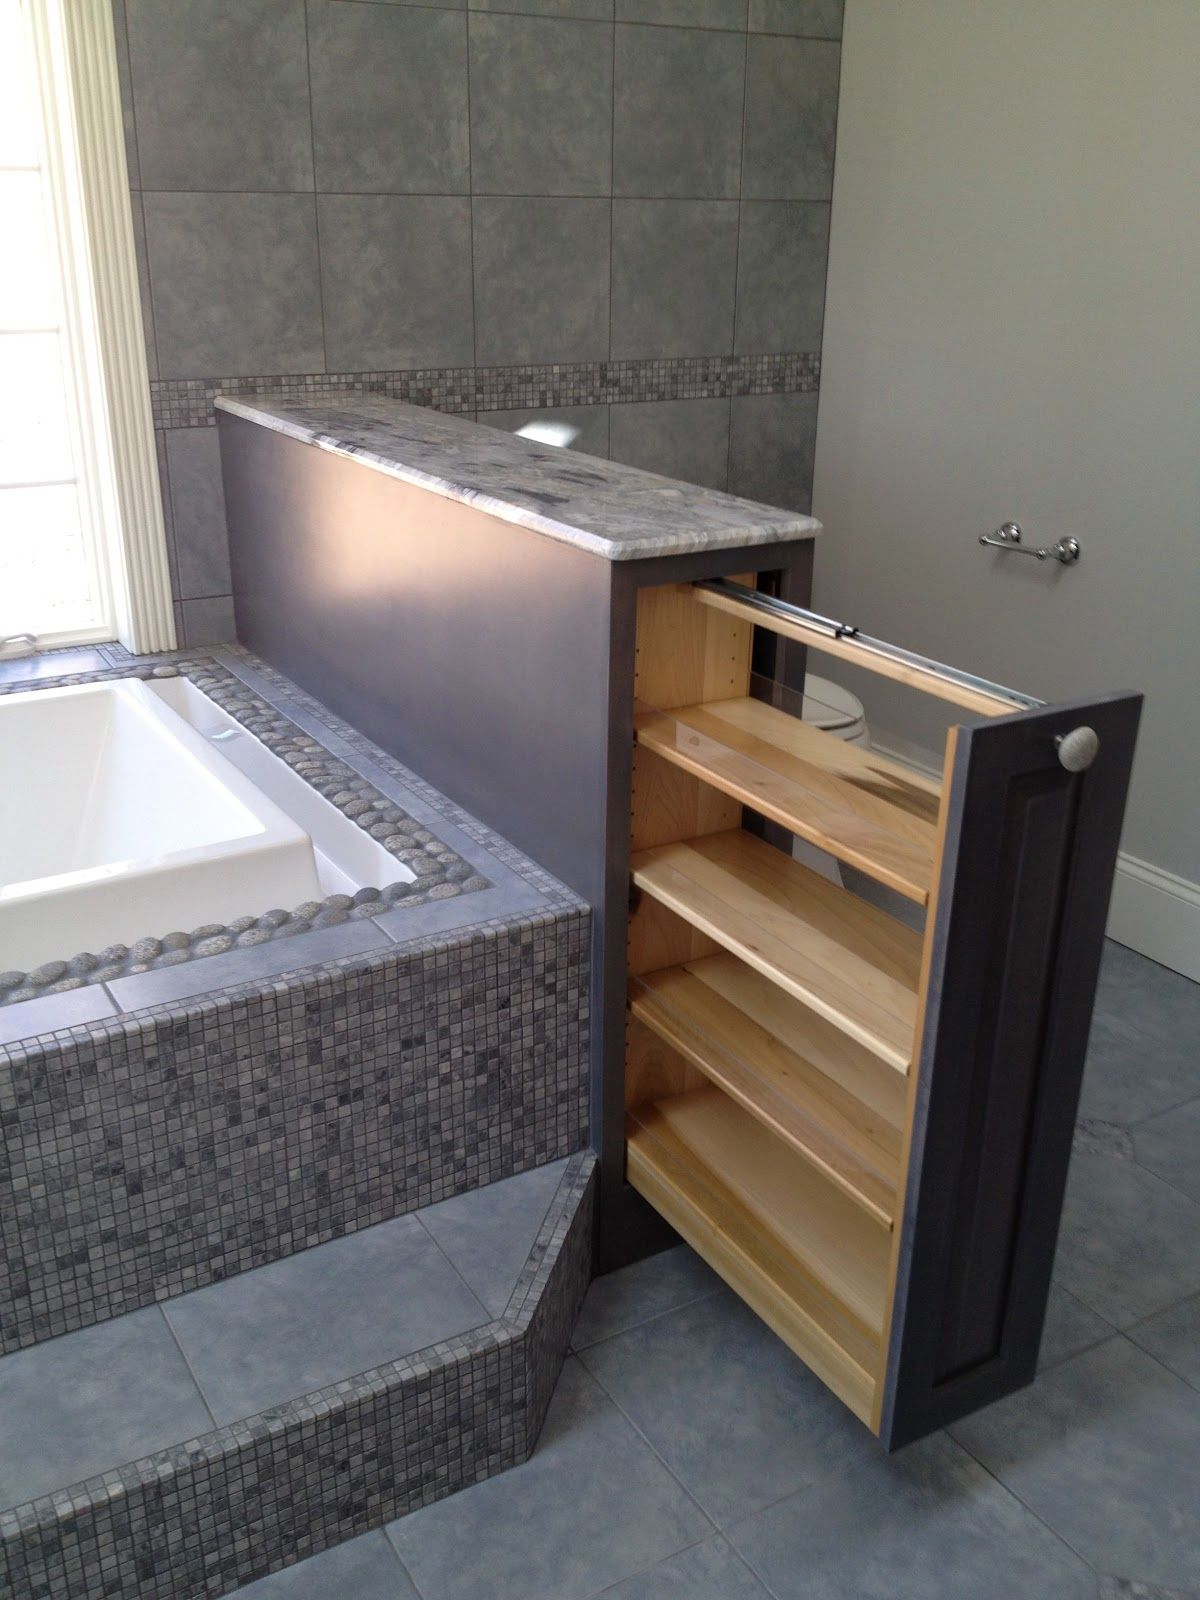 Hidden Niche For Bath Products Towel Warming Drawer Built Into Bench In Drawer Out Home New Homes Bathrooms Remodel